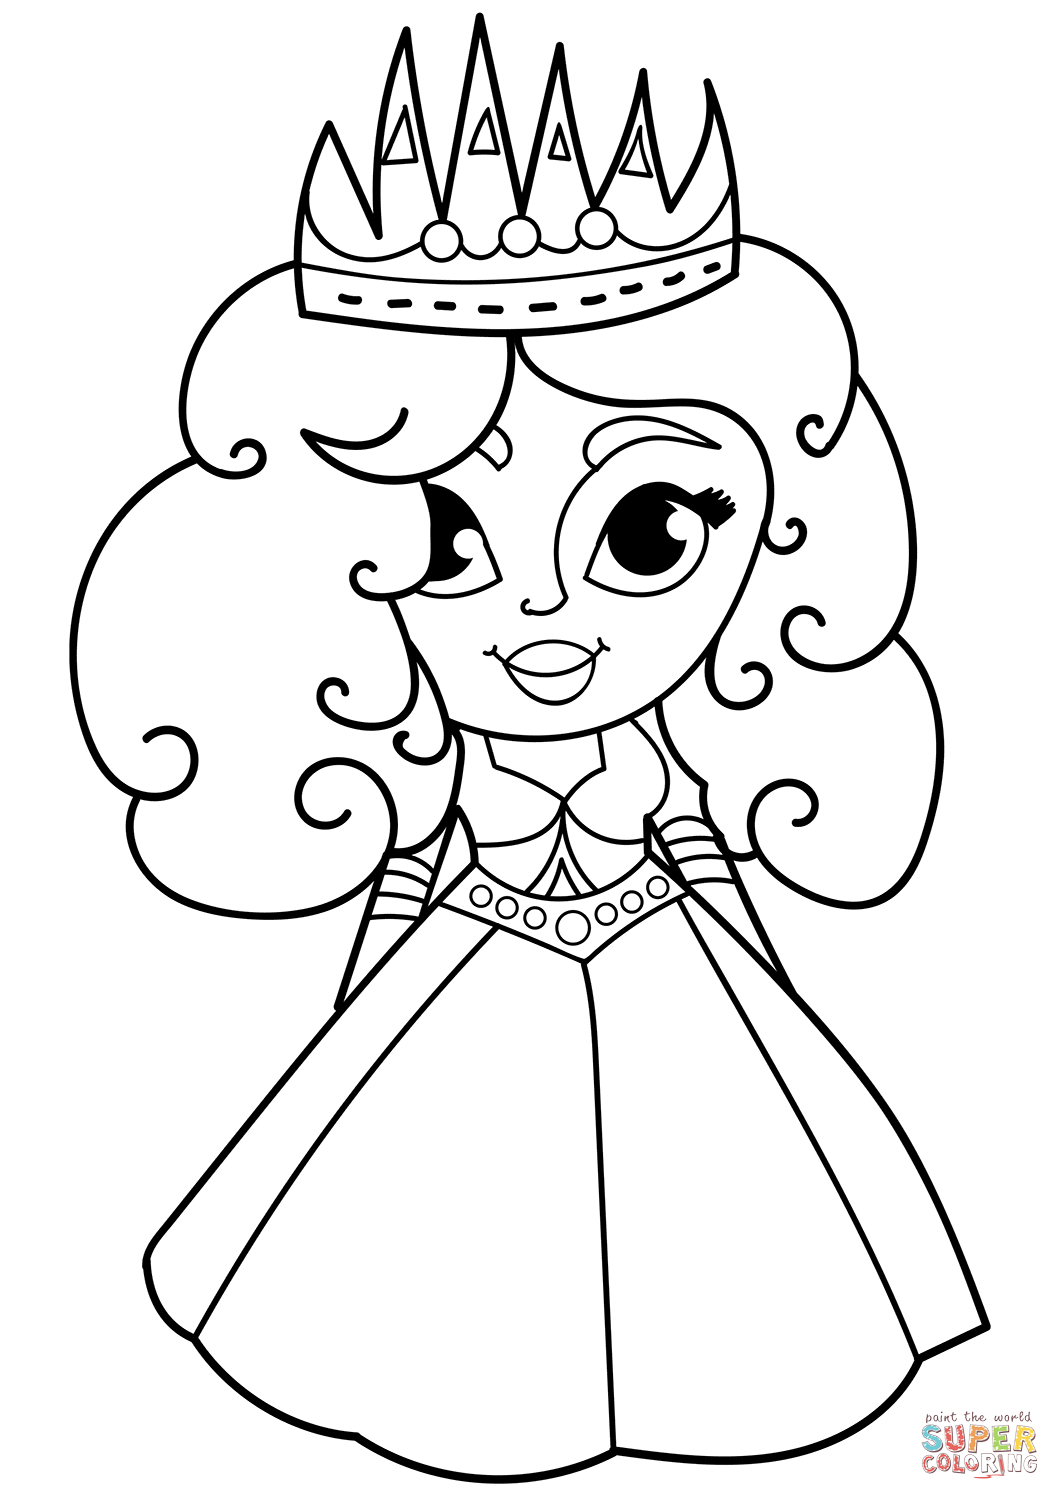 1060x1500 Cartoon Princess Coloring Page Free Printable Coloring Pages